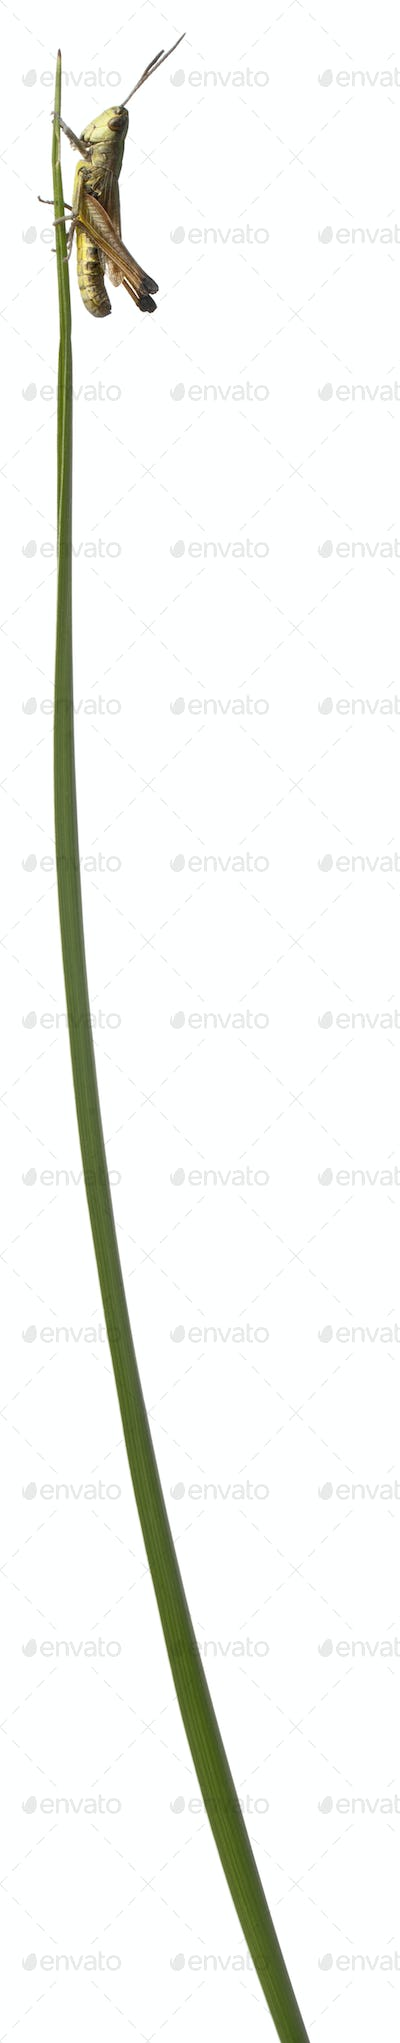 Grasshopper on a grass blade in front of white background